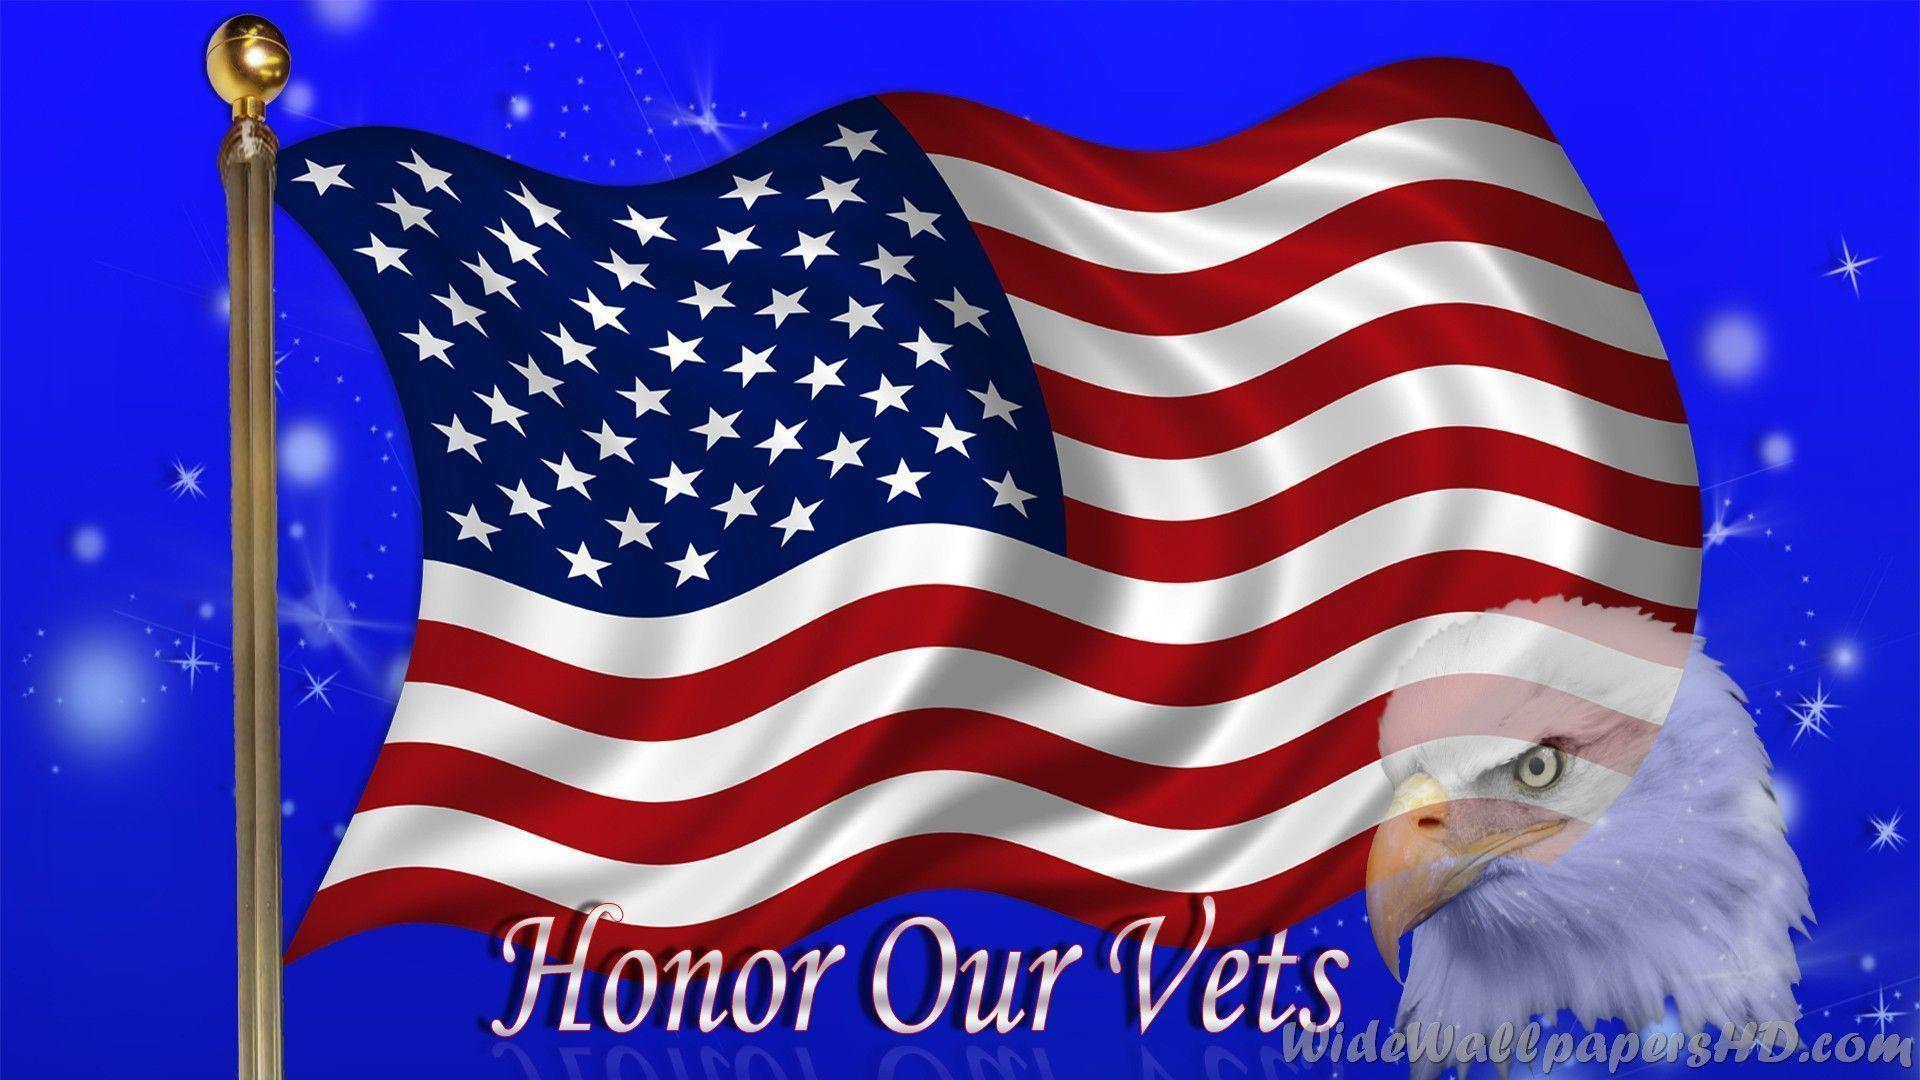 Veterans Day Wallpapers 1920x1080 and Veterans Day Images